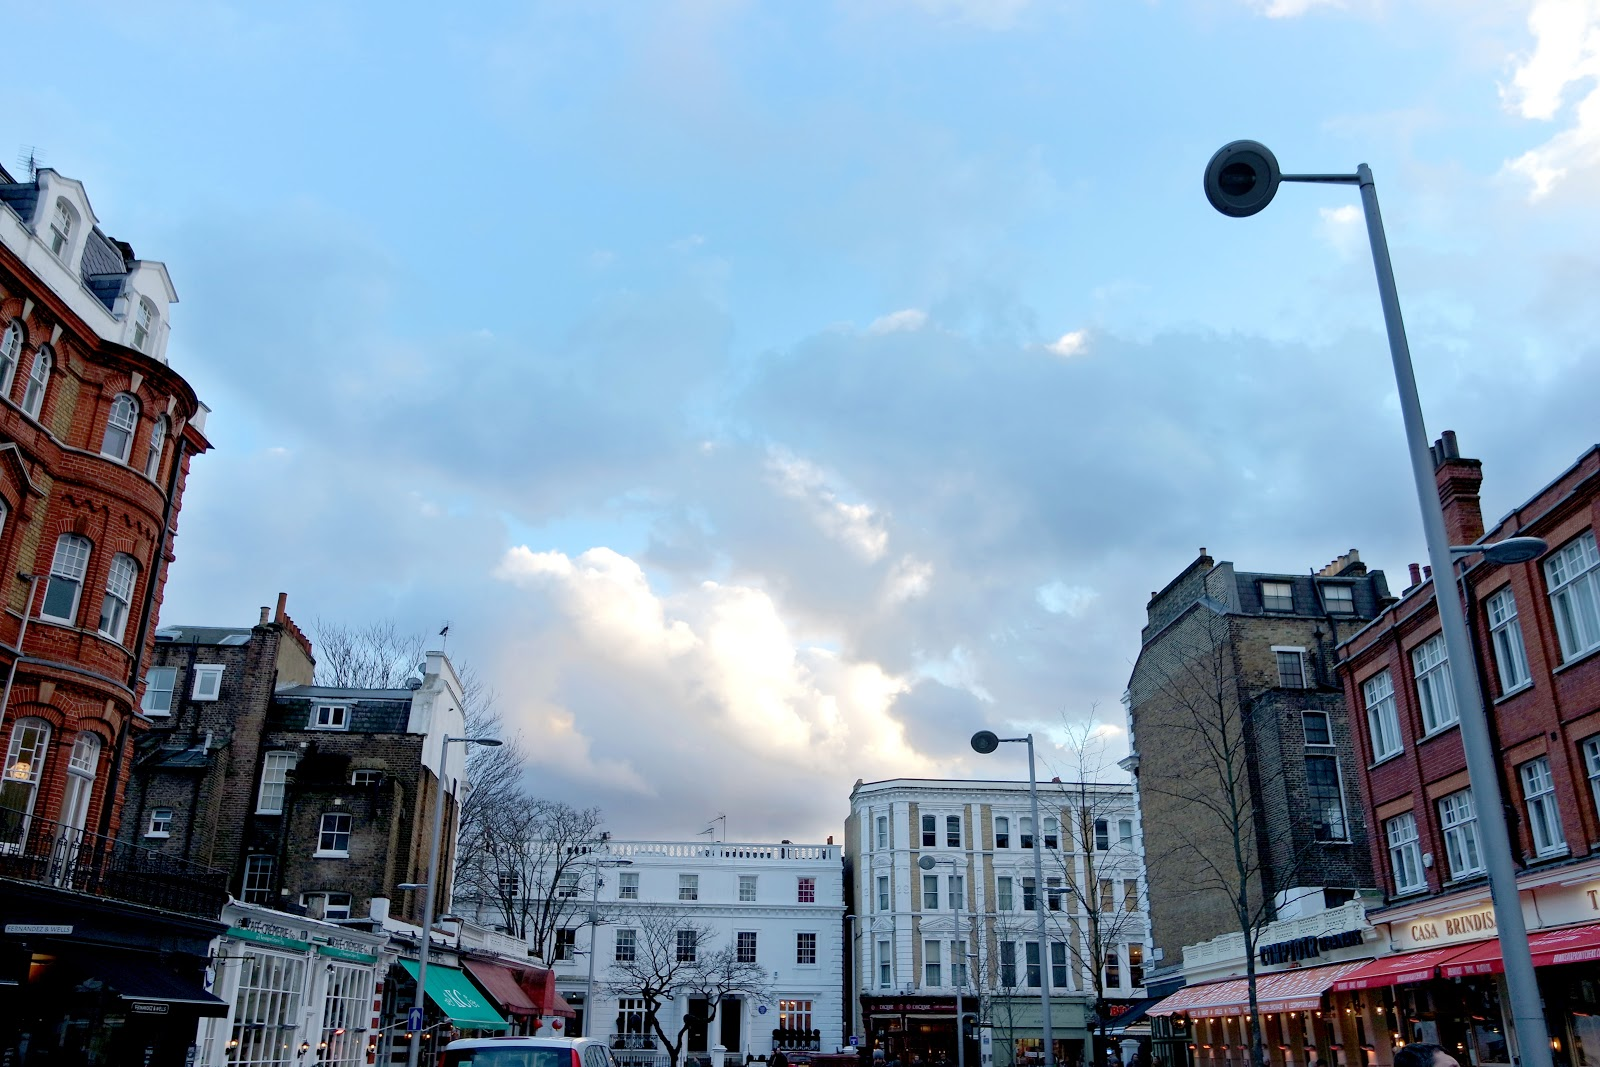 exhibition Road, South Kensington, London, Londres, vlog, blog, travel, travelling, london streets, french,